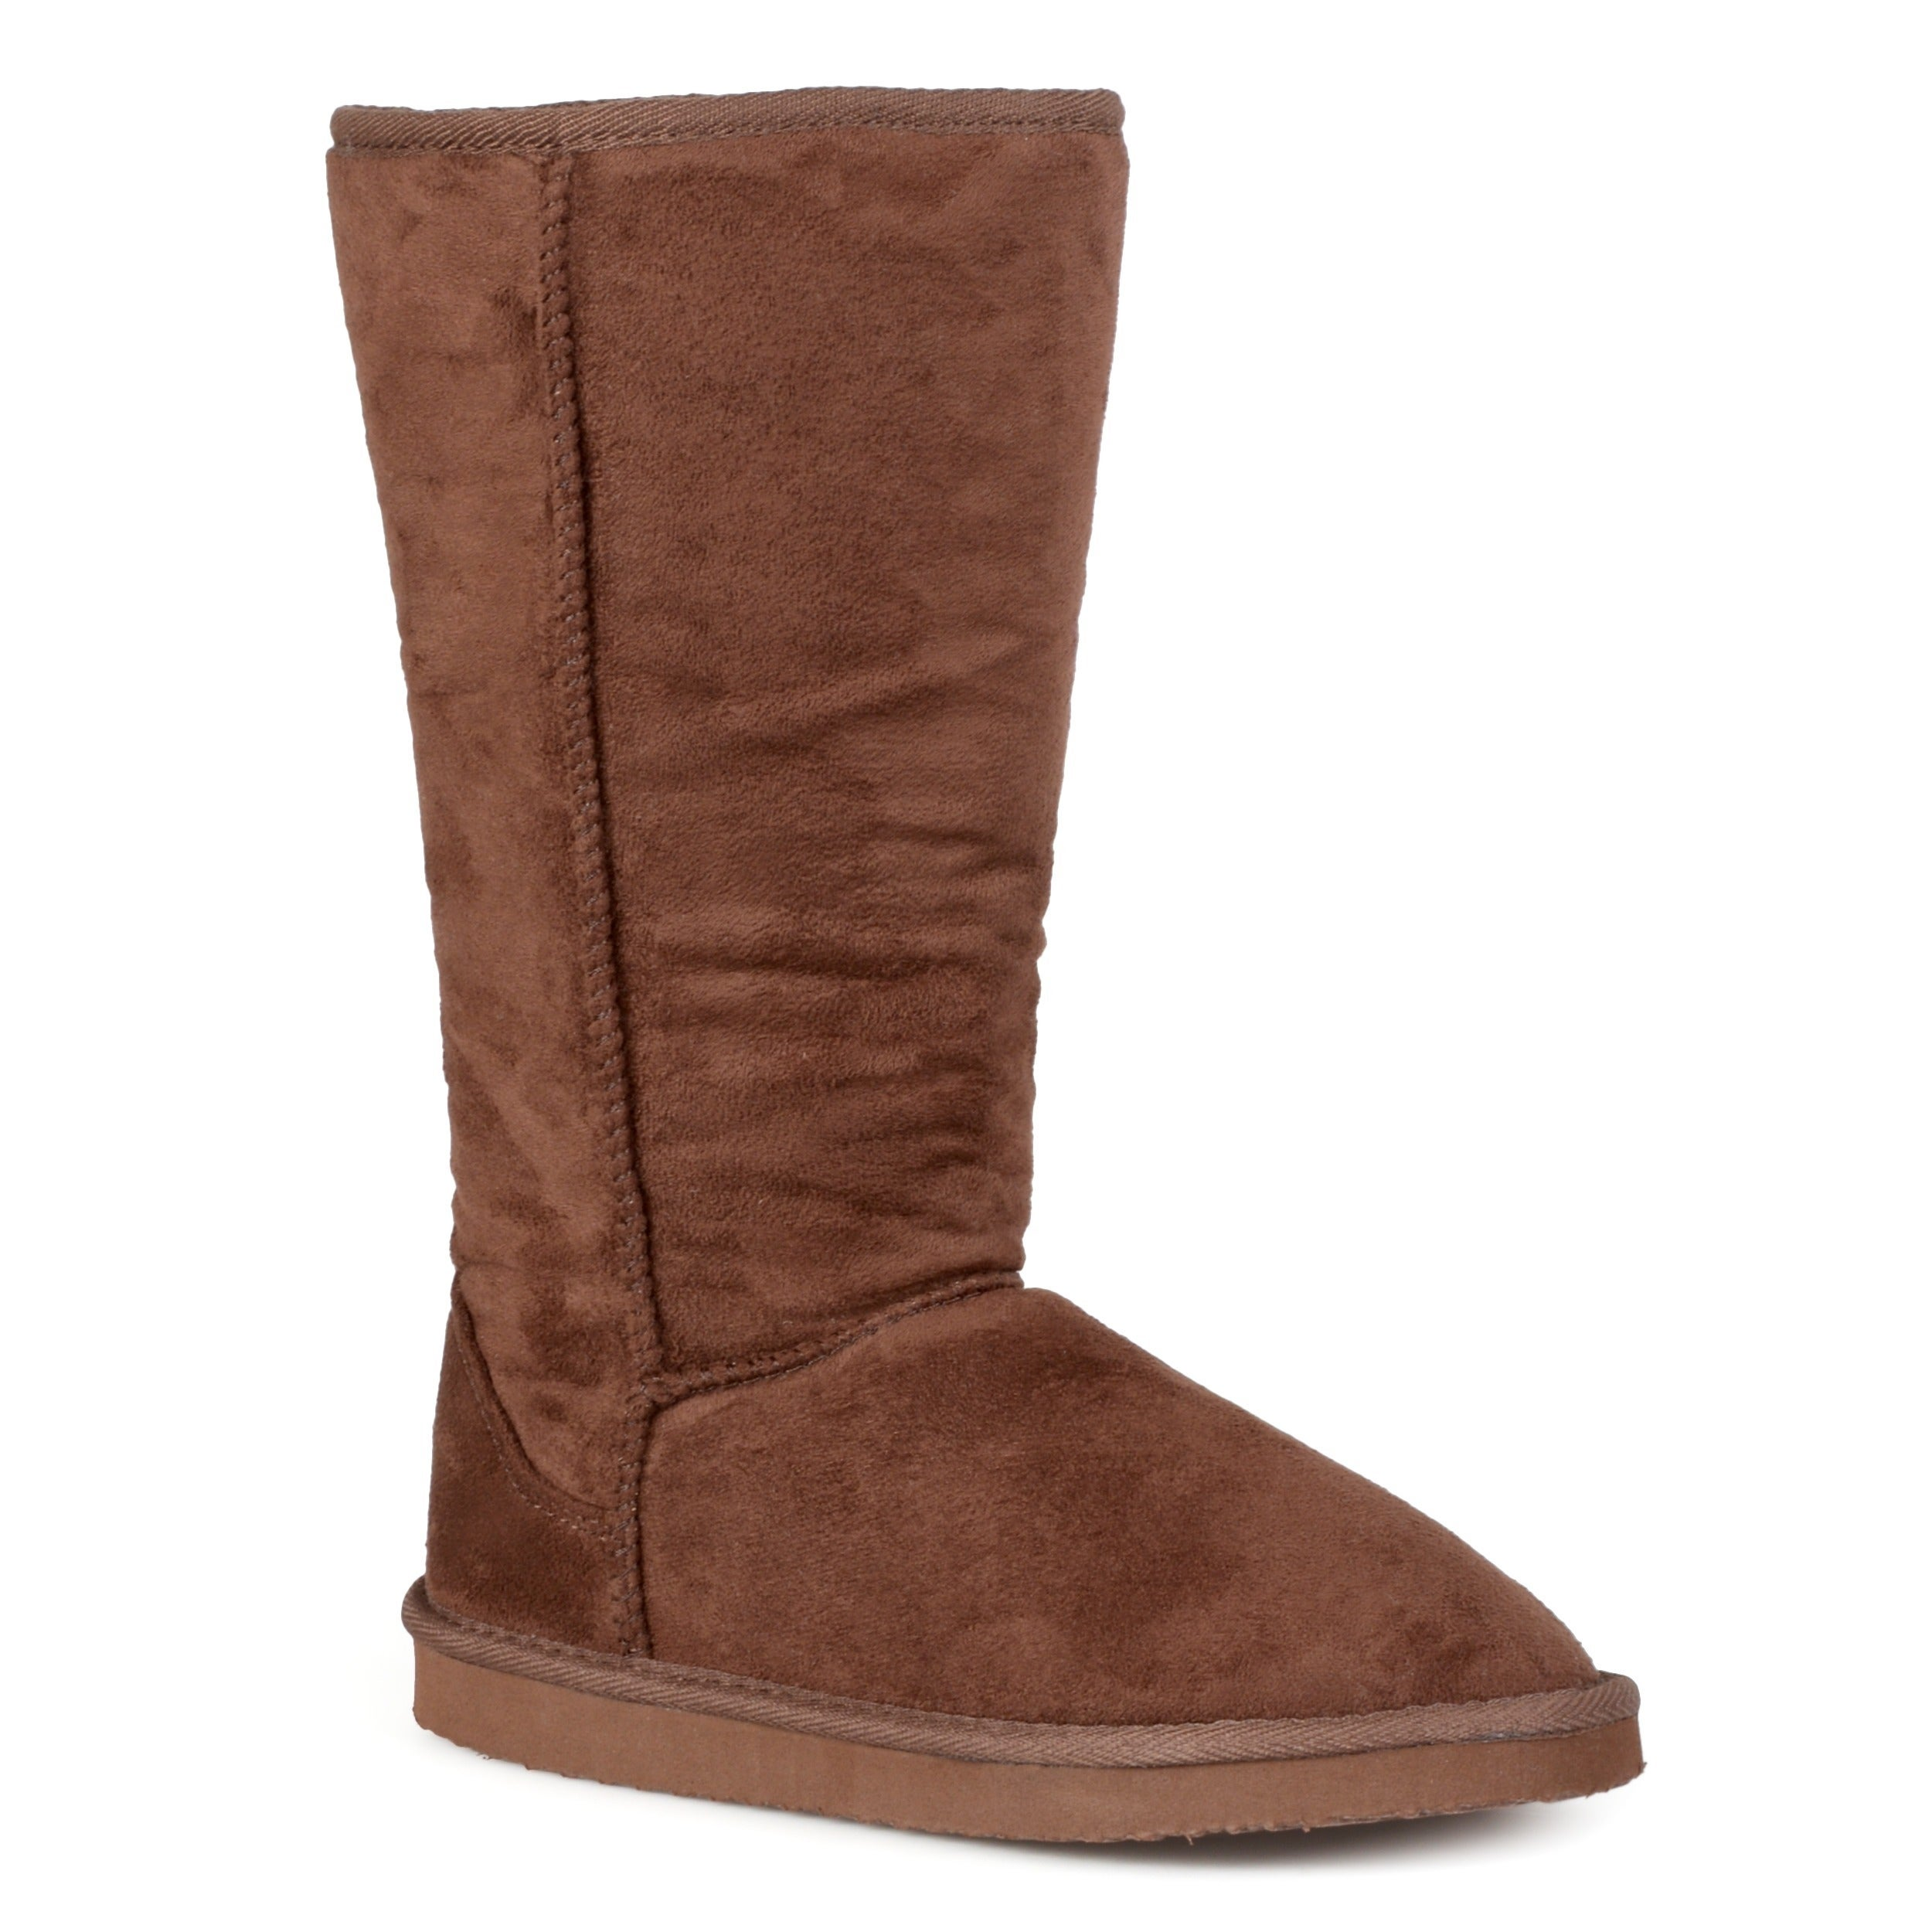 Adi Designs 710 Women's ... Midcalf Boots zroPGqY8g